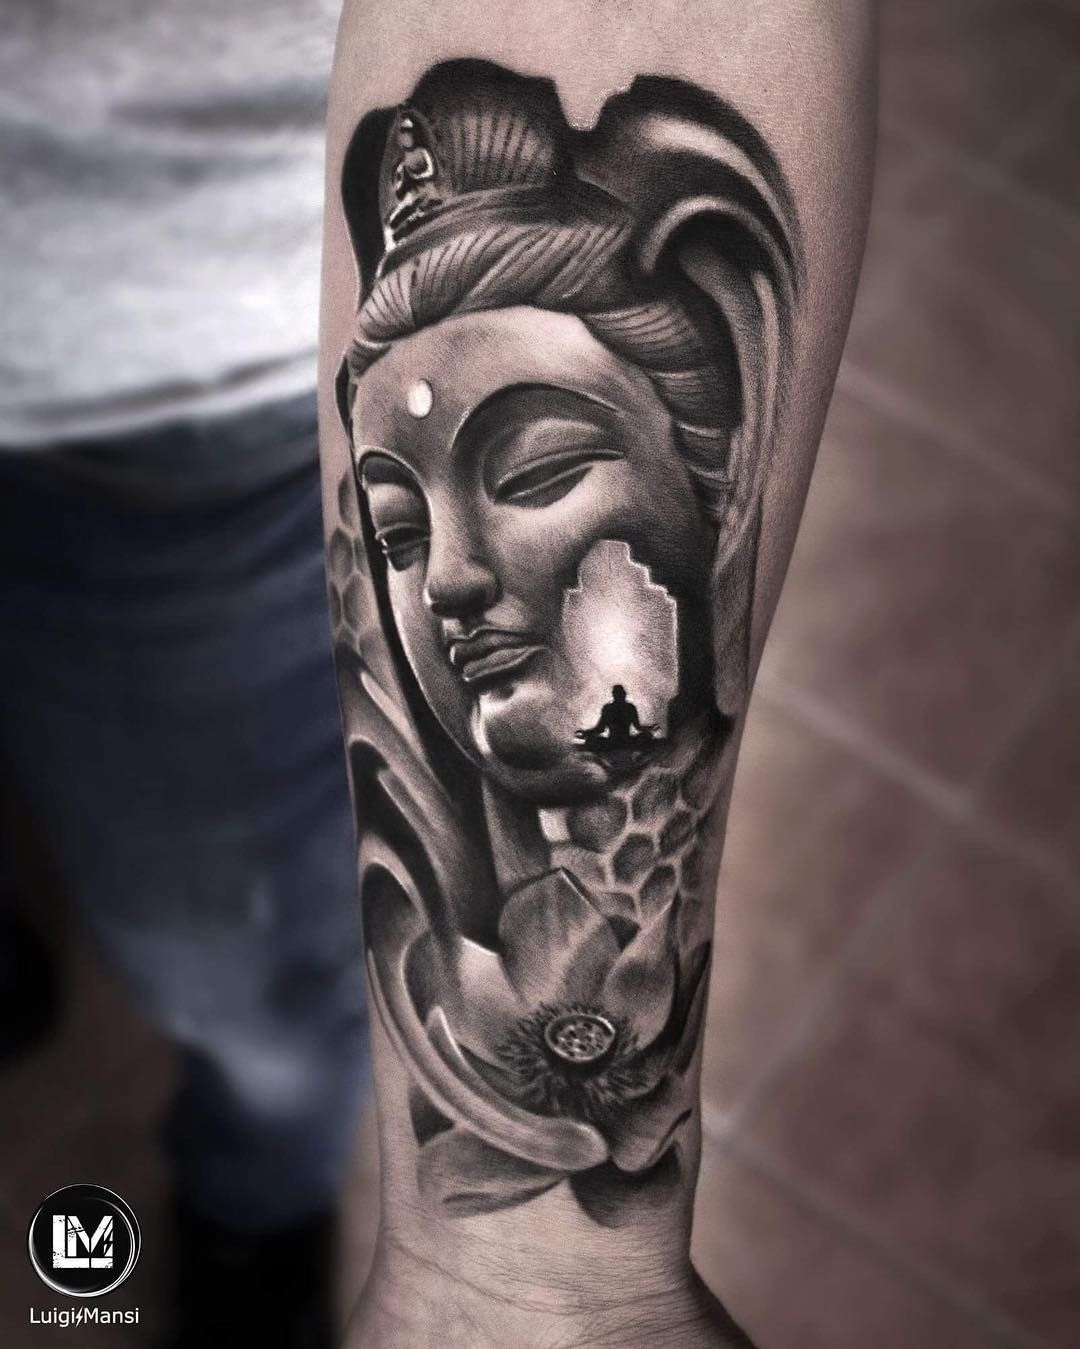 Realistic And Surrealistic Tattoo From The Photography Of Buddha Black Gray Info Luigimansi It Buddha Tattoo Design Black And Grey Tattoos Cool Tattoos